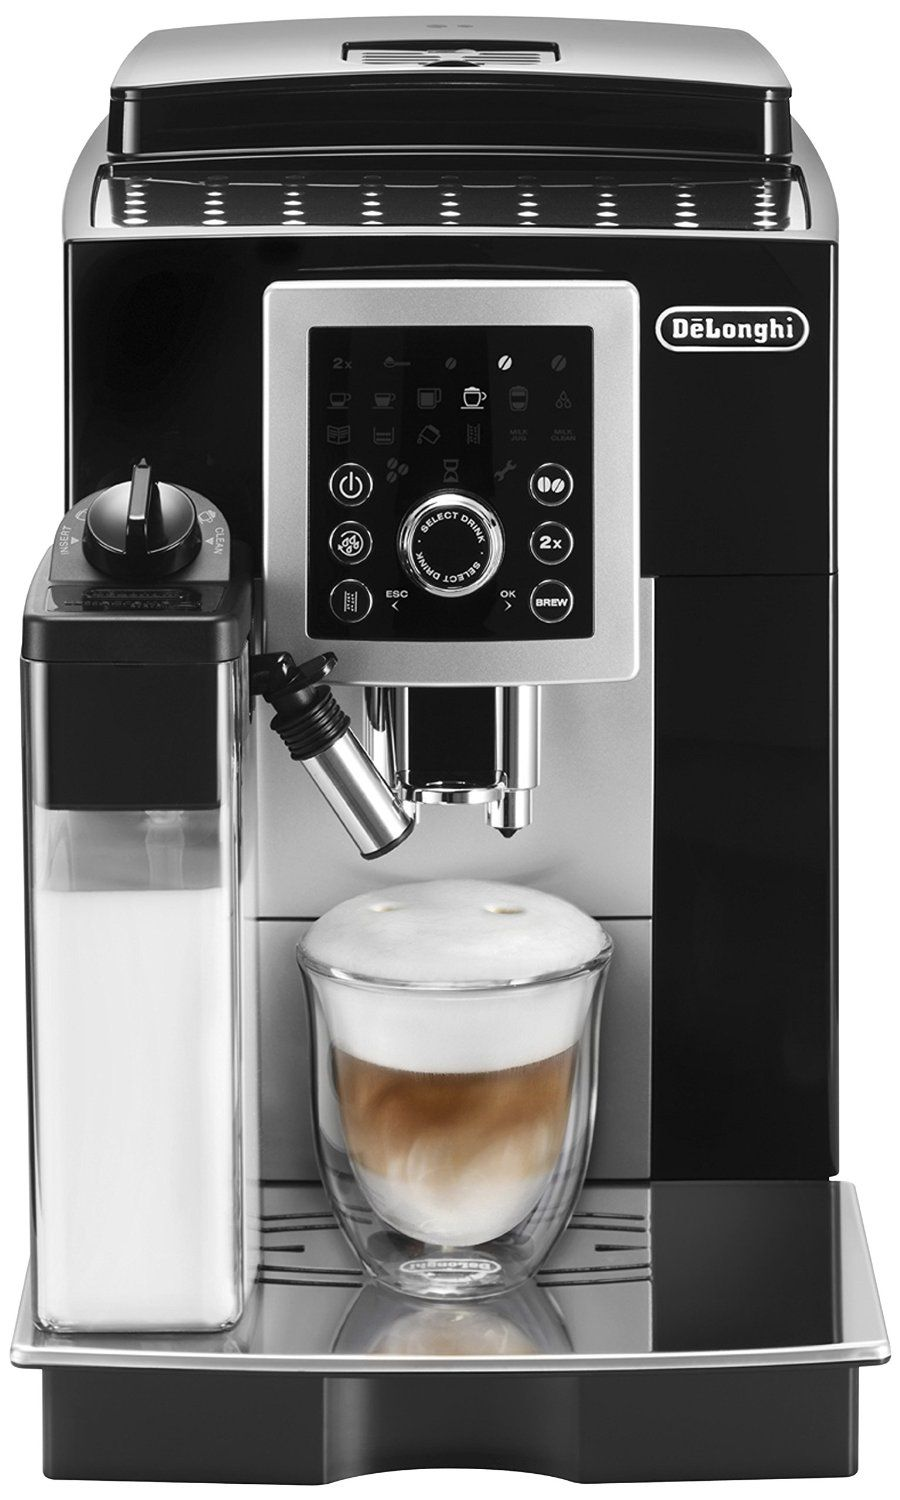 The Best High End Coffee Makers In 2015 Kitchenaholic Coffee Machine Design Cappuccino Machine Coffee Maker High end coffee makers for home